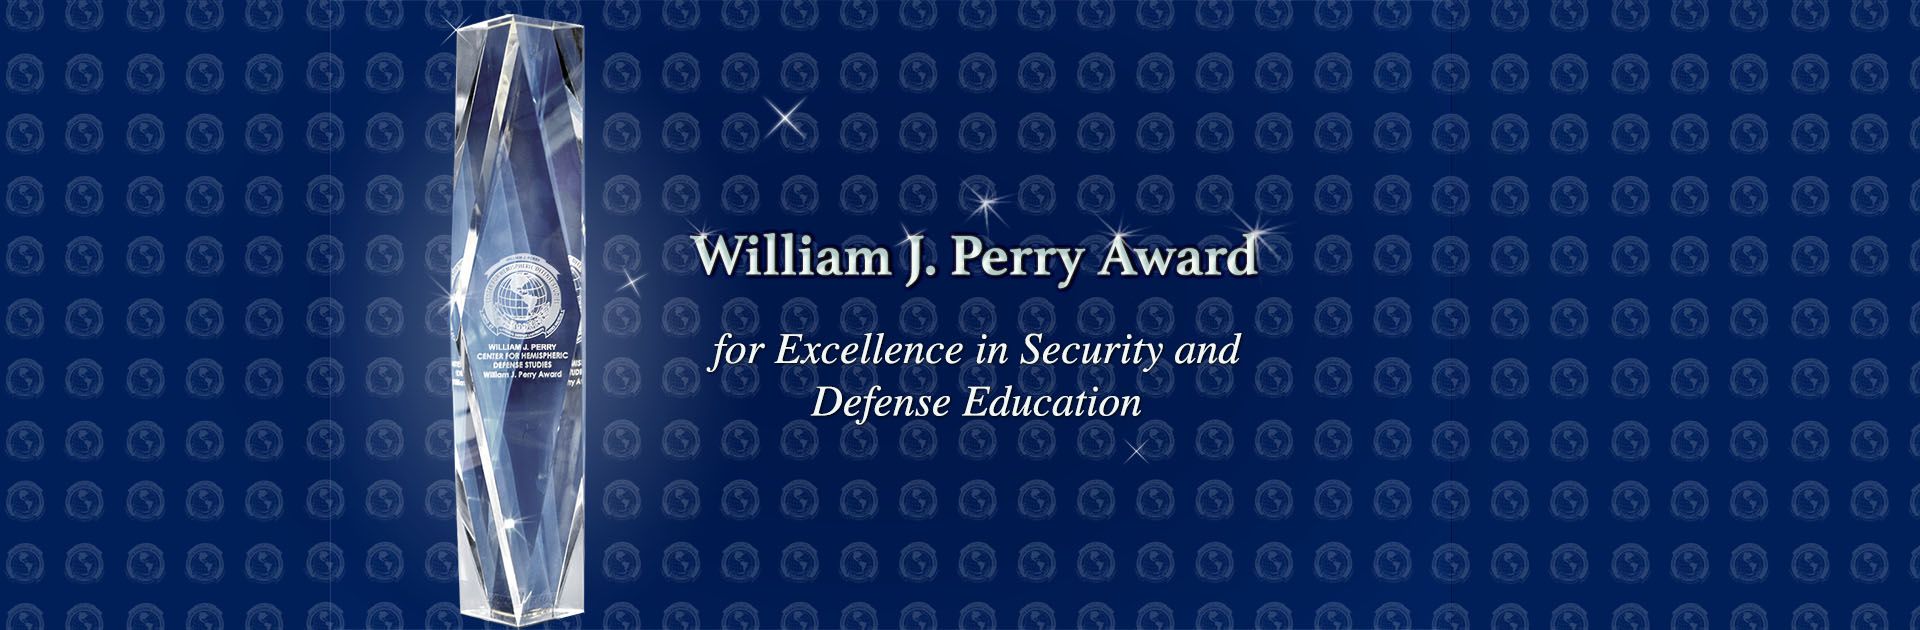 William J. Perry Center Announces 2017 Perry Award Recipients